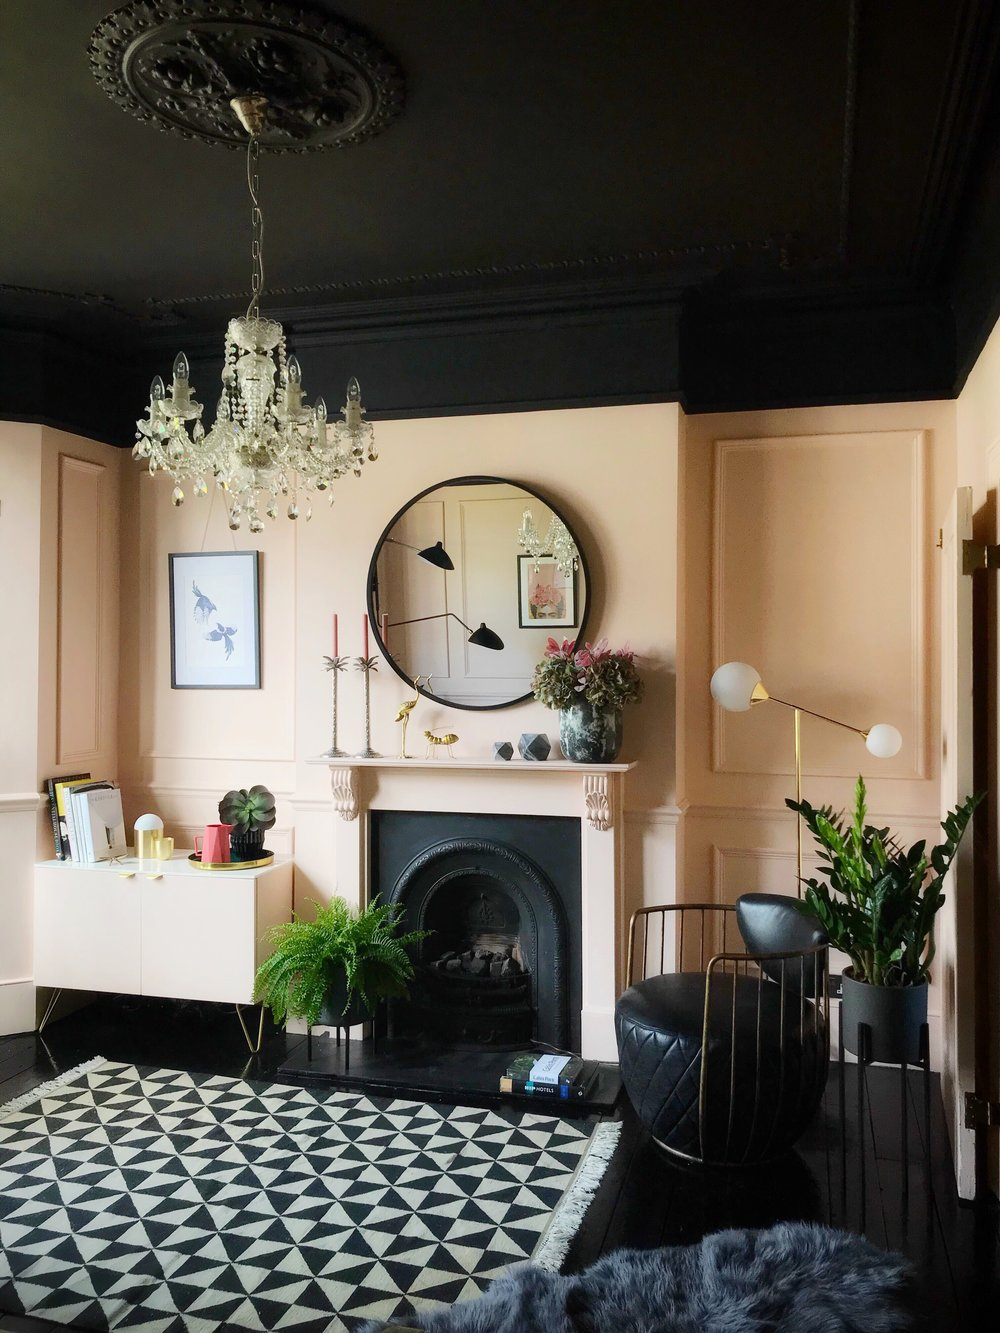 House Envy Peachy Keen At The Then They Went Wild House Gold Is A Neutral